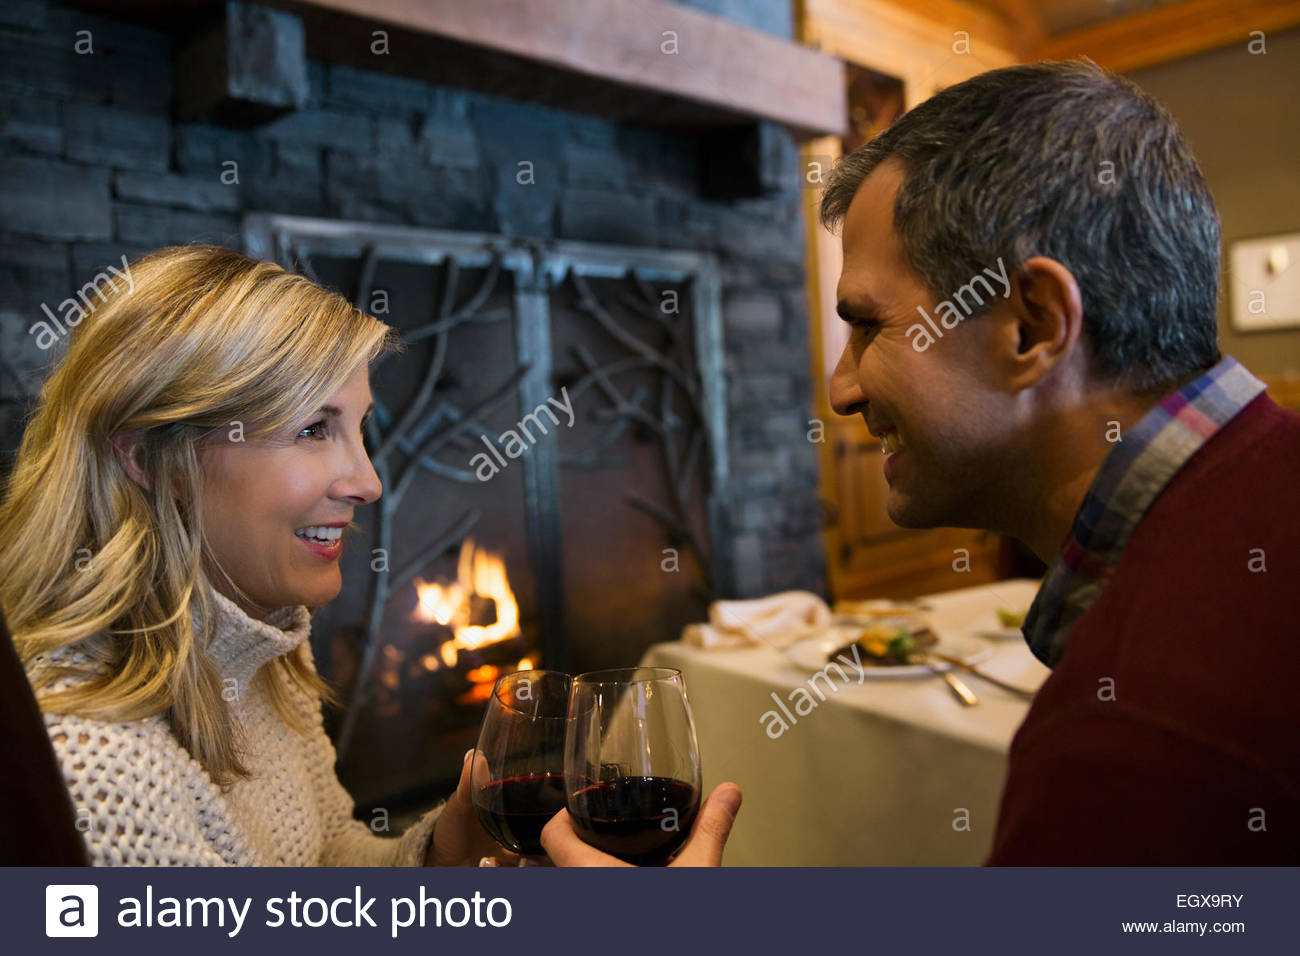 Couple toasting wine glasses at restaurant fireside - Stock Image